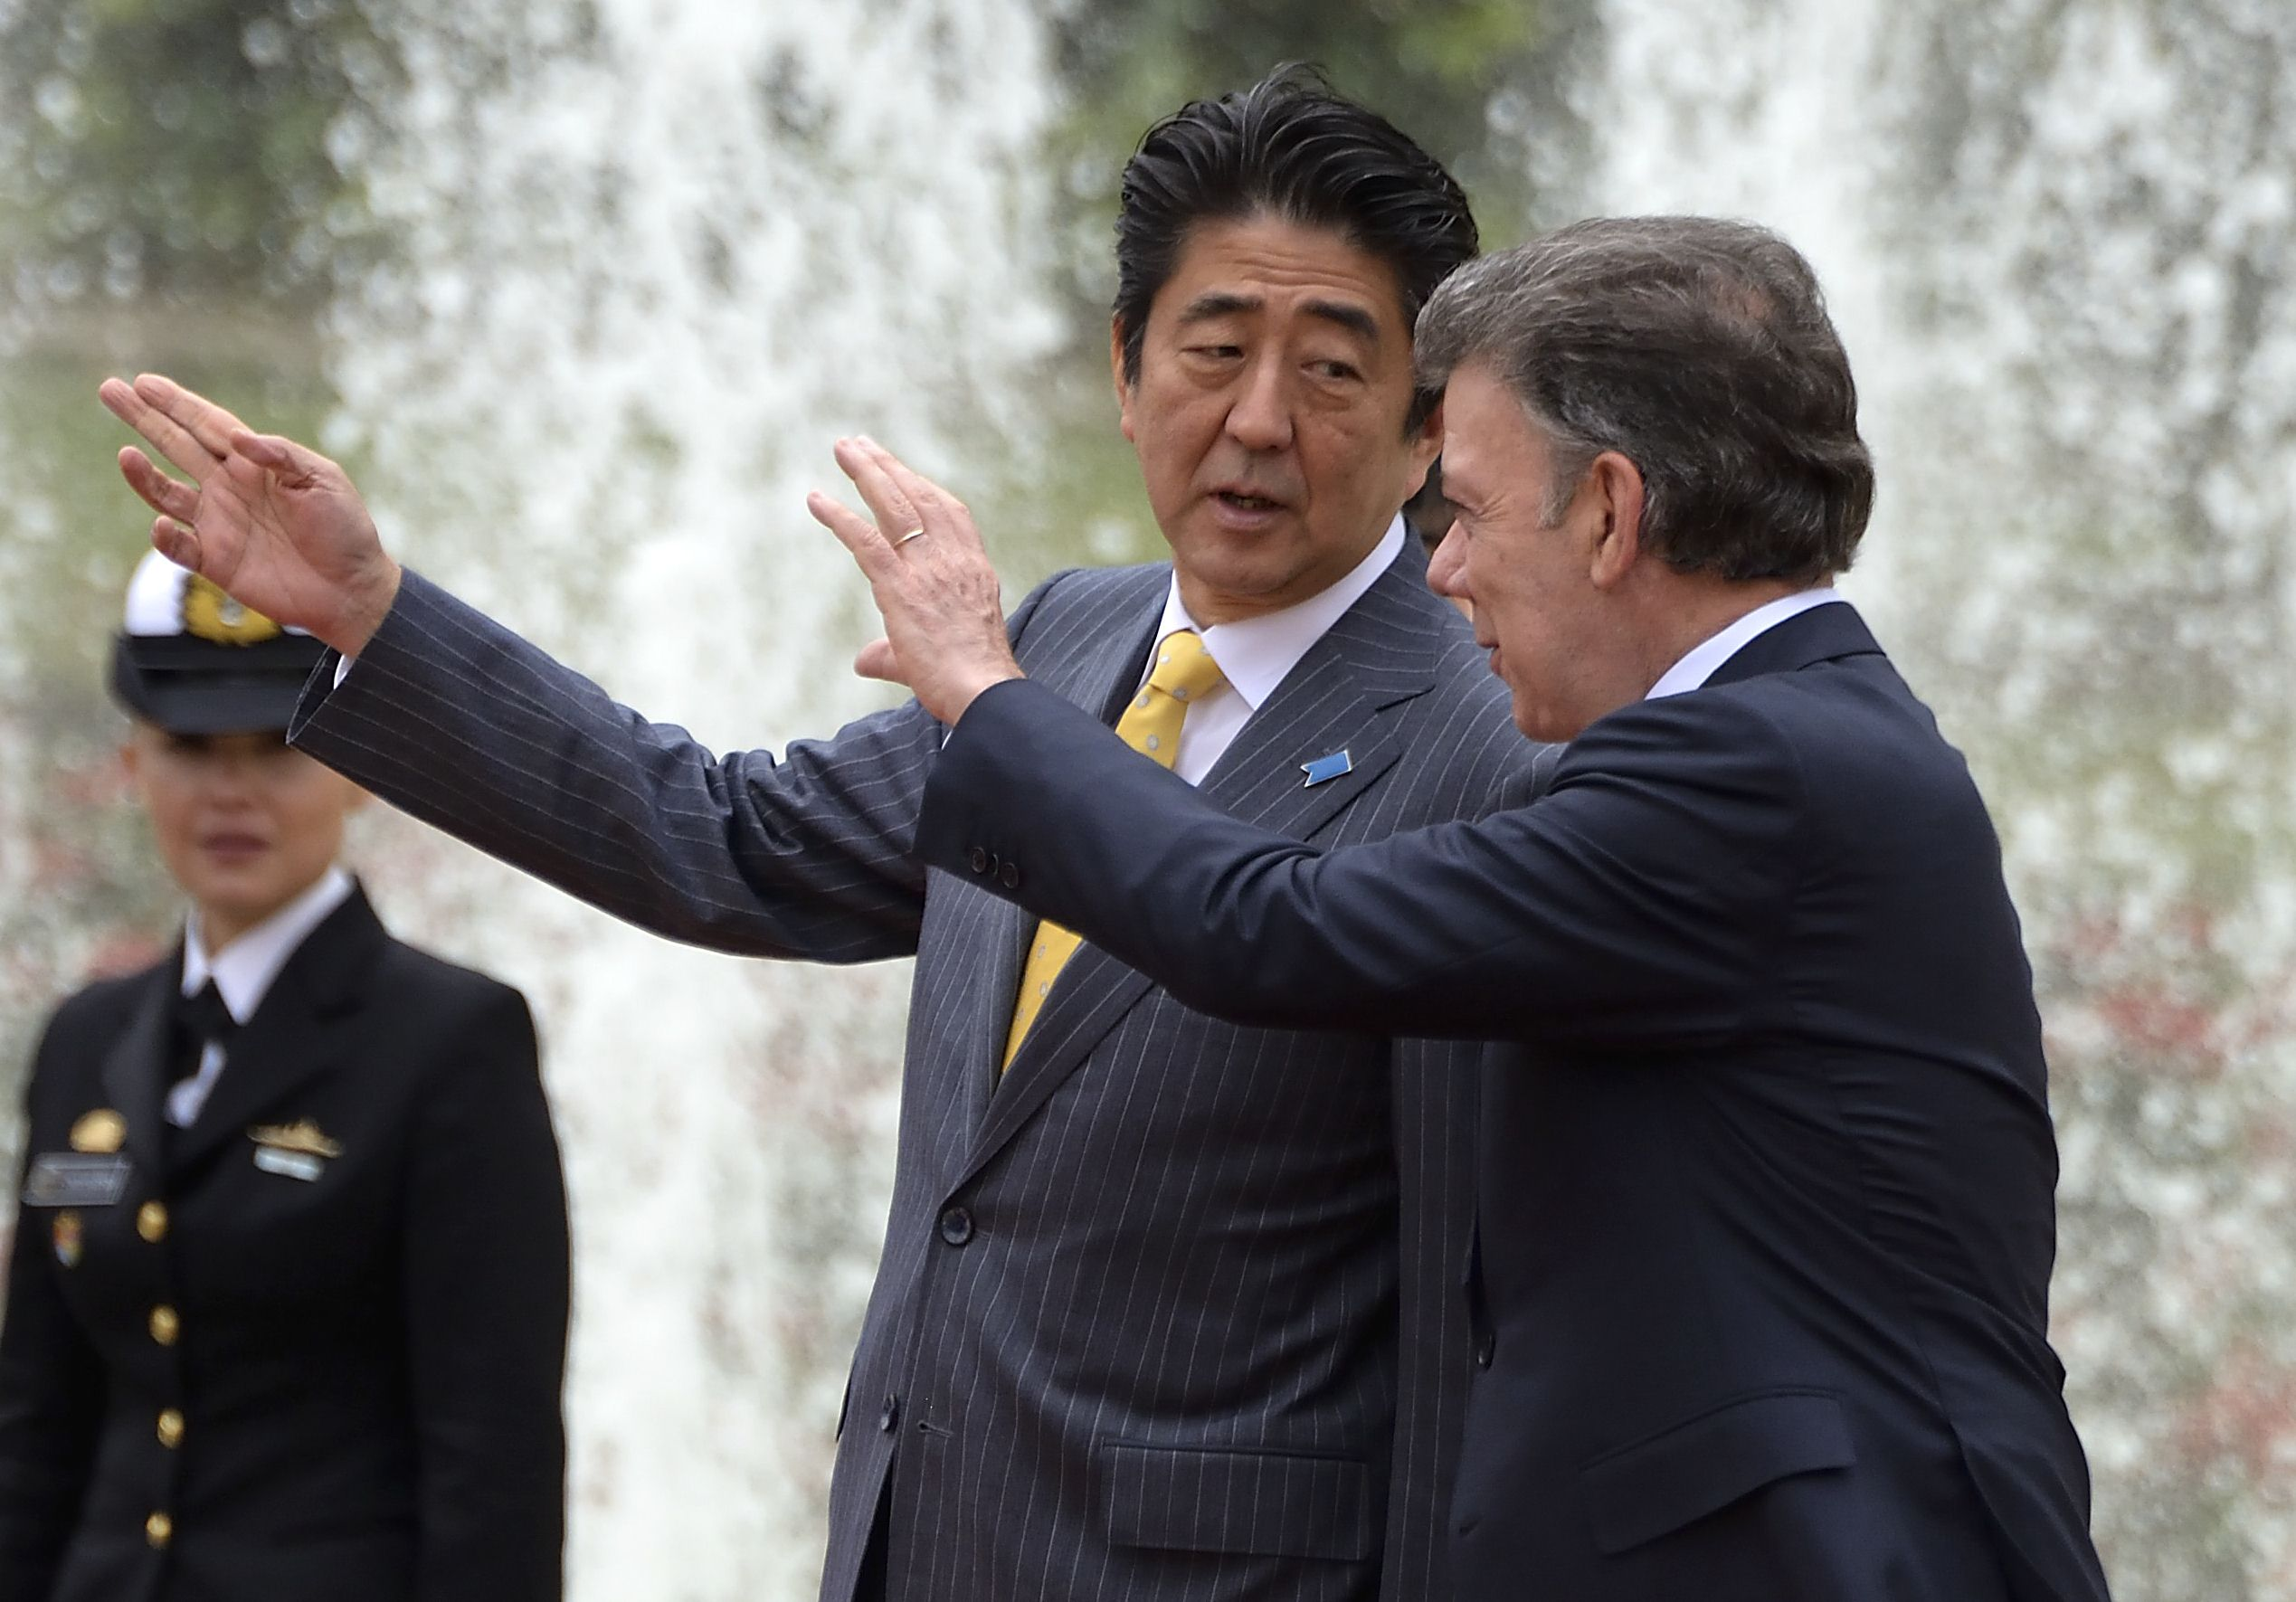 Prime Minister Shinzo Abe chats with Colombian President Juan Manuel Santos during a welcoming ceremony at Narino Palace in Bogota on Tuesday. | AFP-JIJI